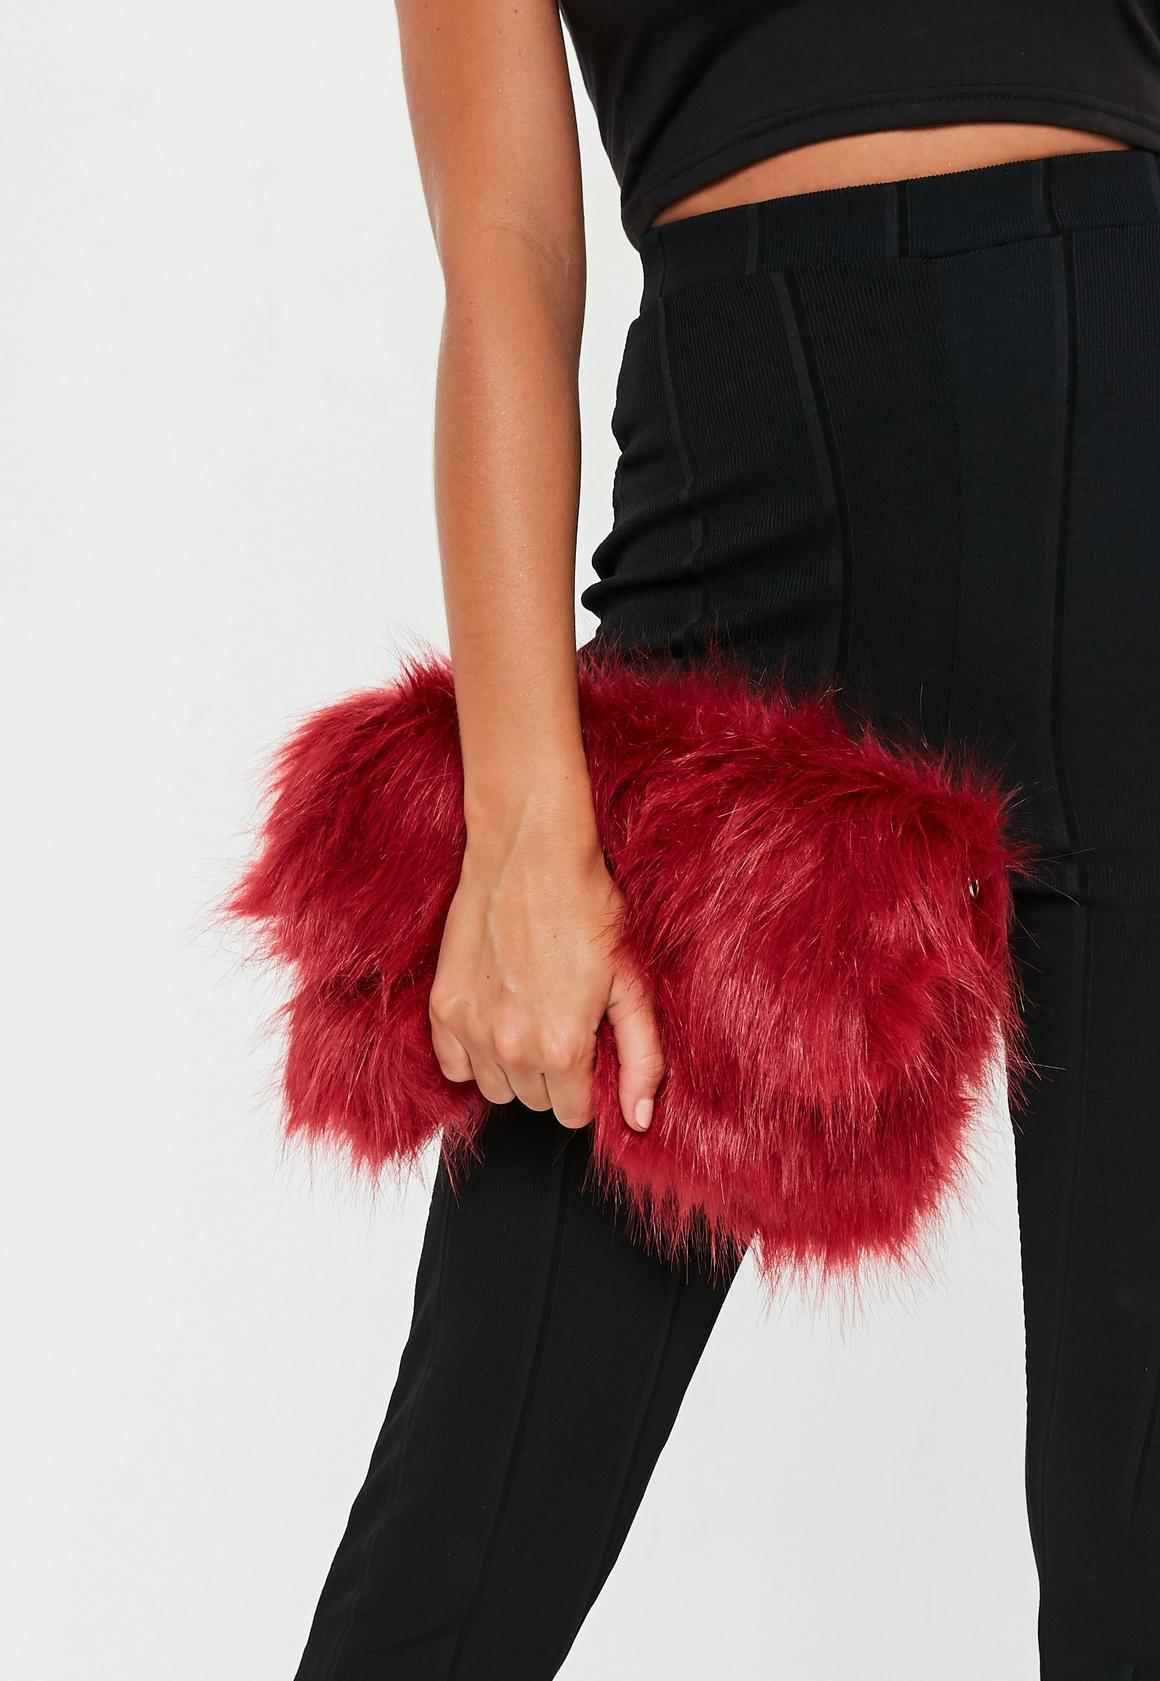 Missguided Red Fur Clutch- $13.20